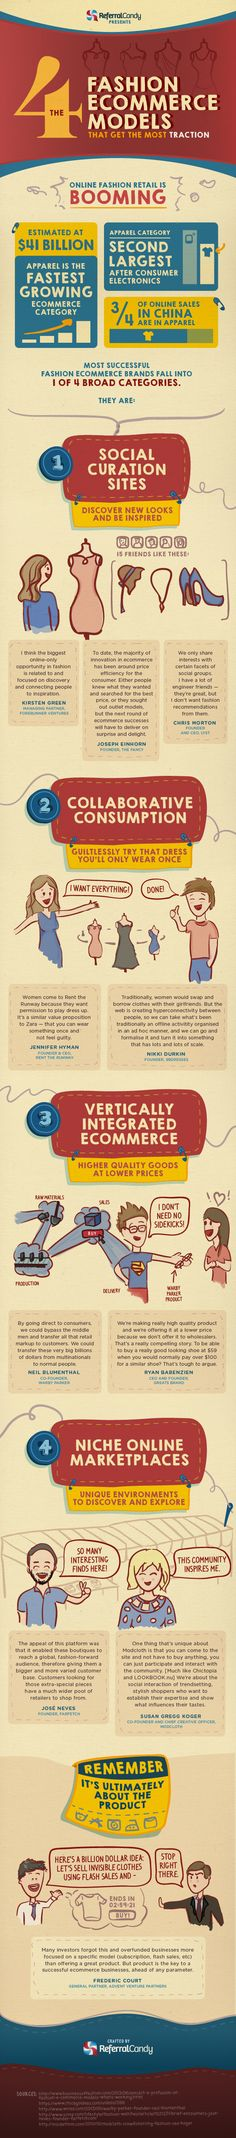 The 4 Fashion Ecommerce Models That Get The Most Traction [Infographic] - ReferralCandy